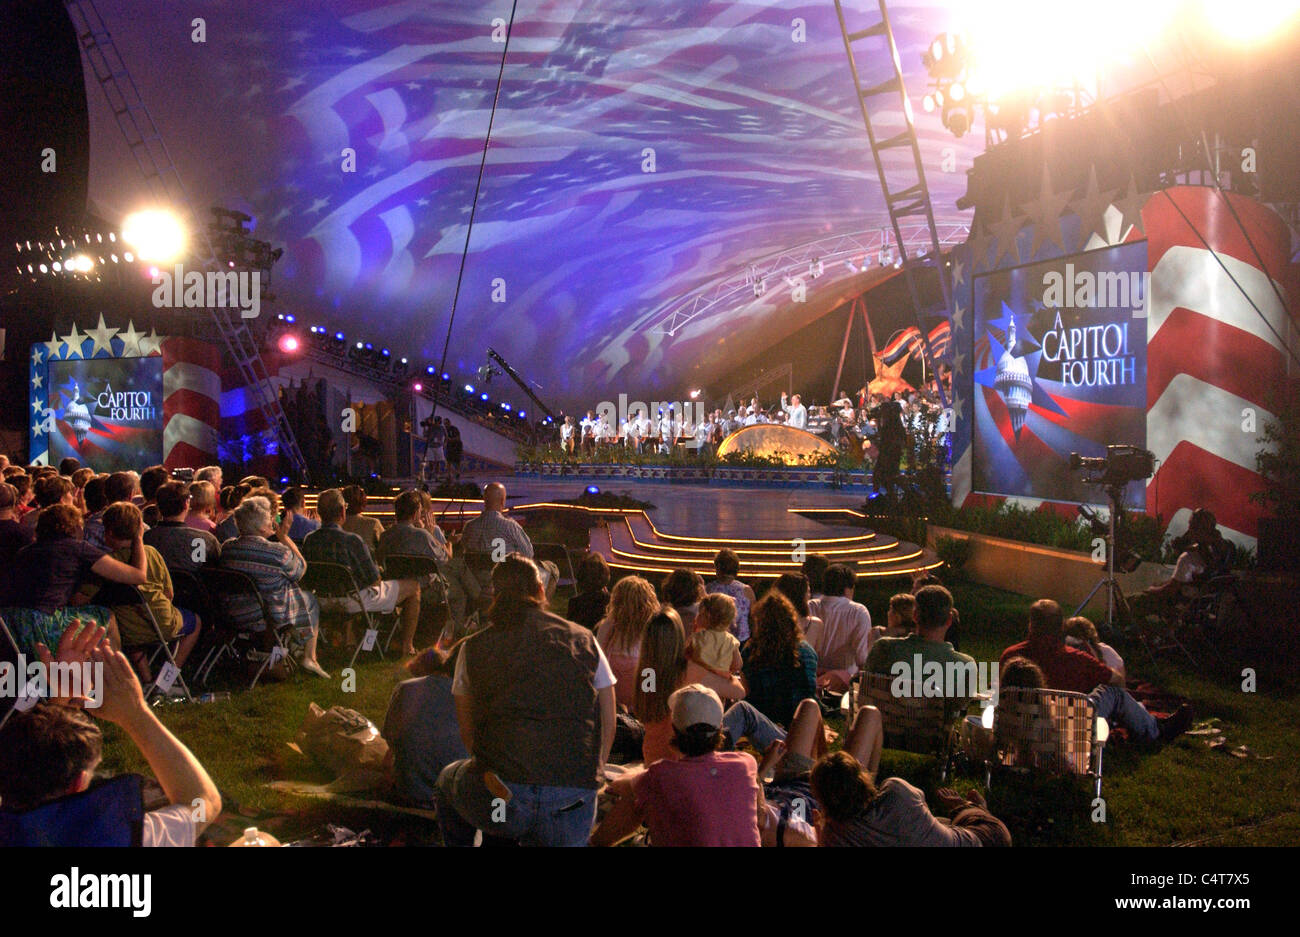 The dress rehearsal for the Capital Fourth 2006 Holiday Concert at the US Capital in Washington. - Stock Image